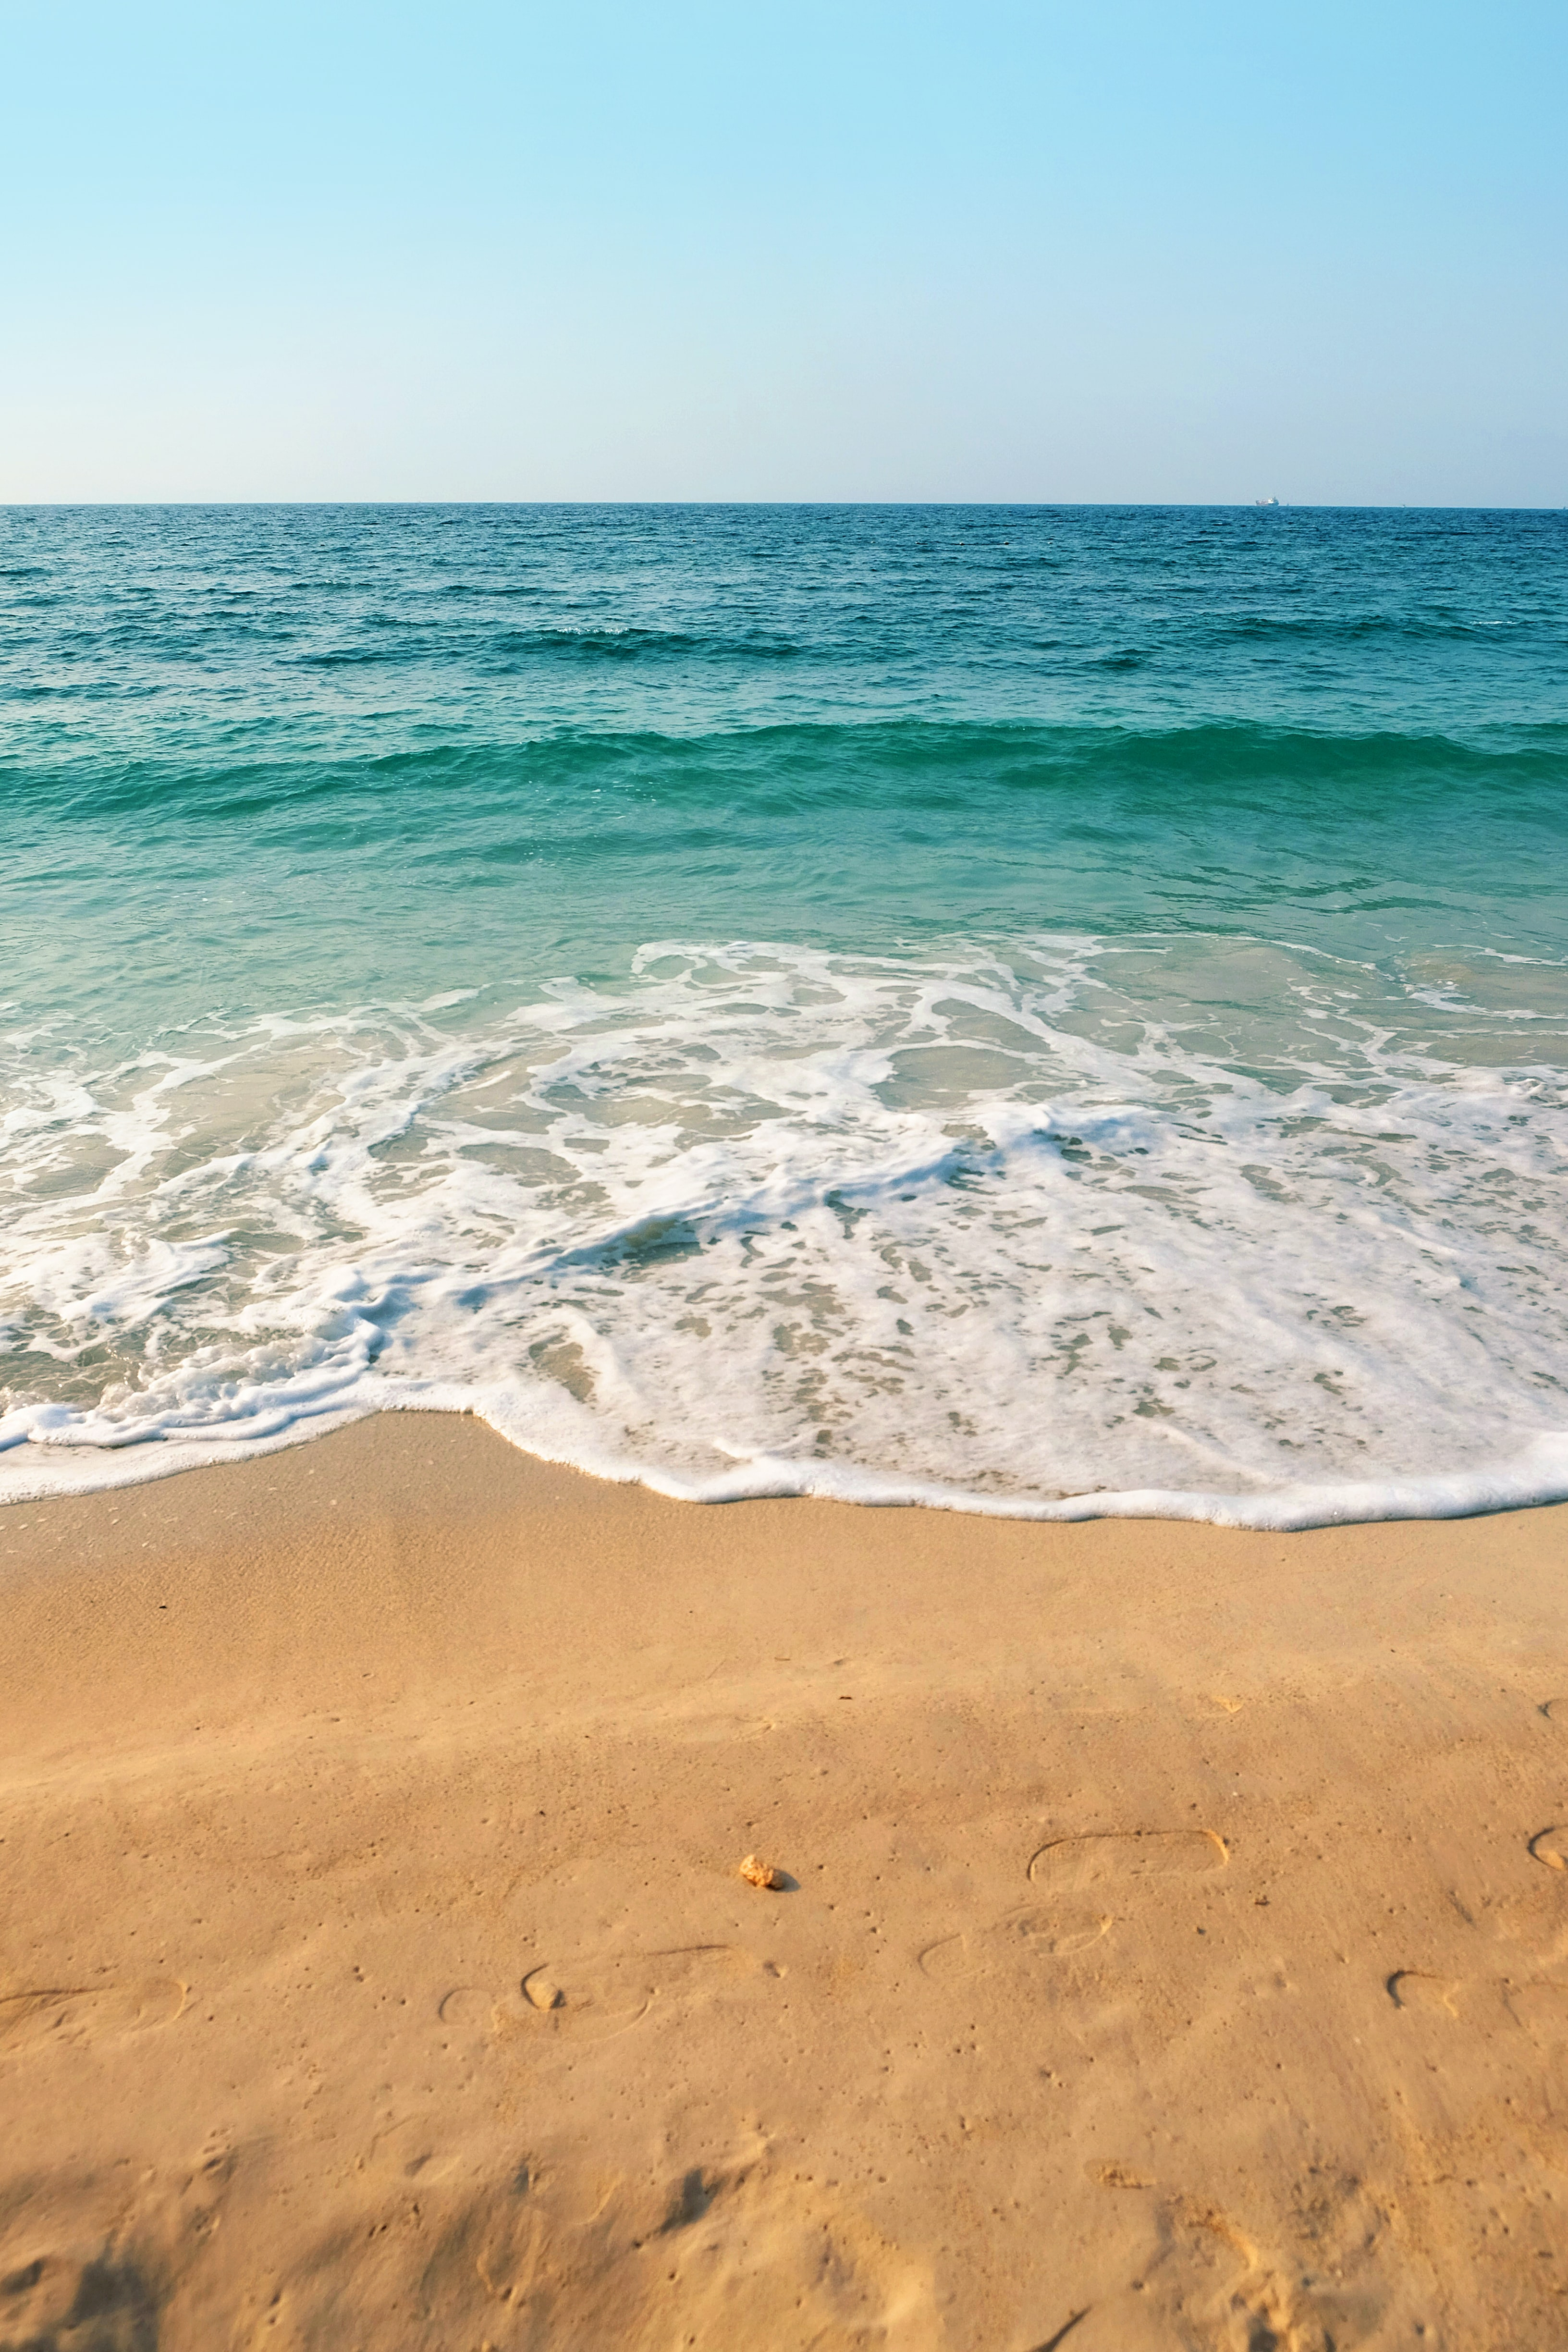 The Waves I Feel The Sun On My Toes I Watch The Waves Come And Go